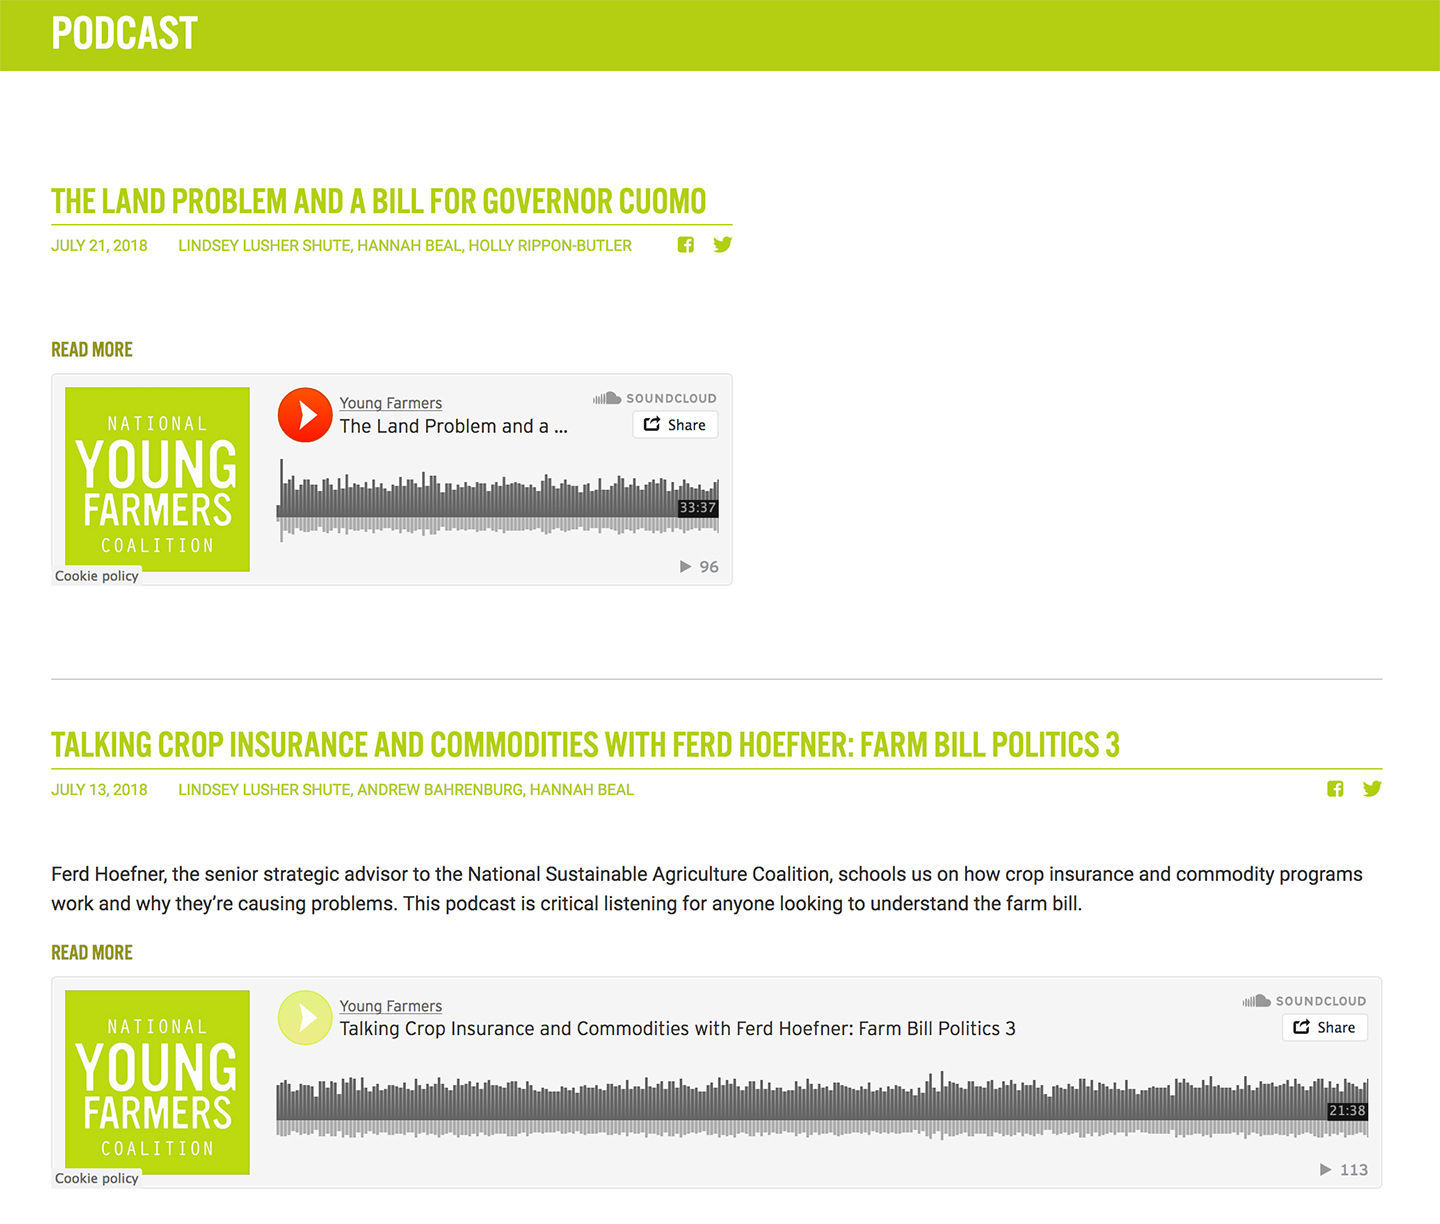 National Young Farmers Coalition: NYFC Featured Podcasts